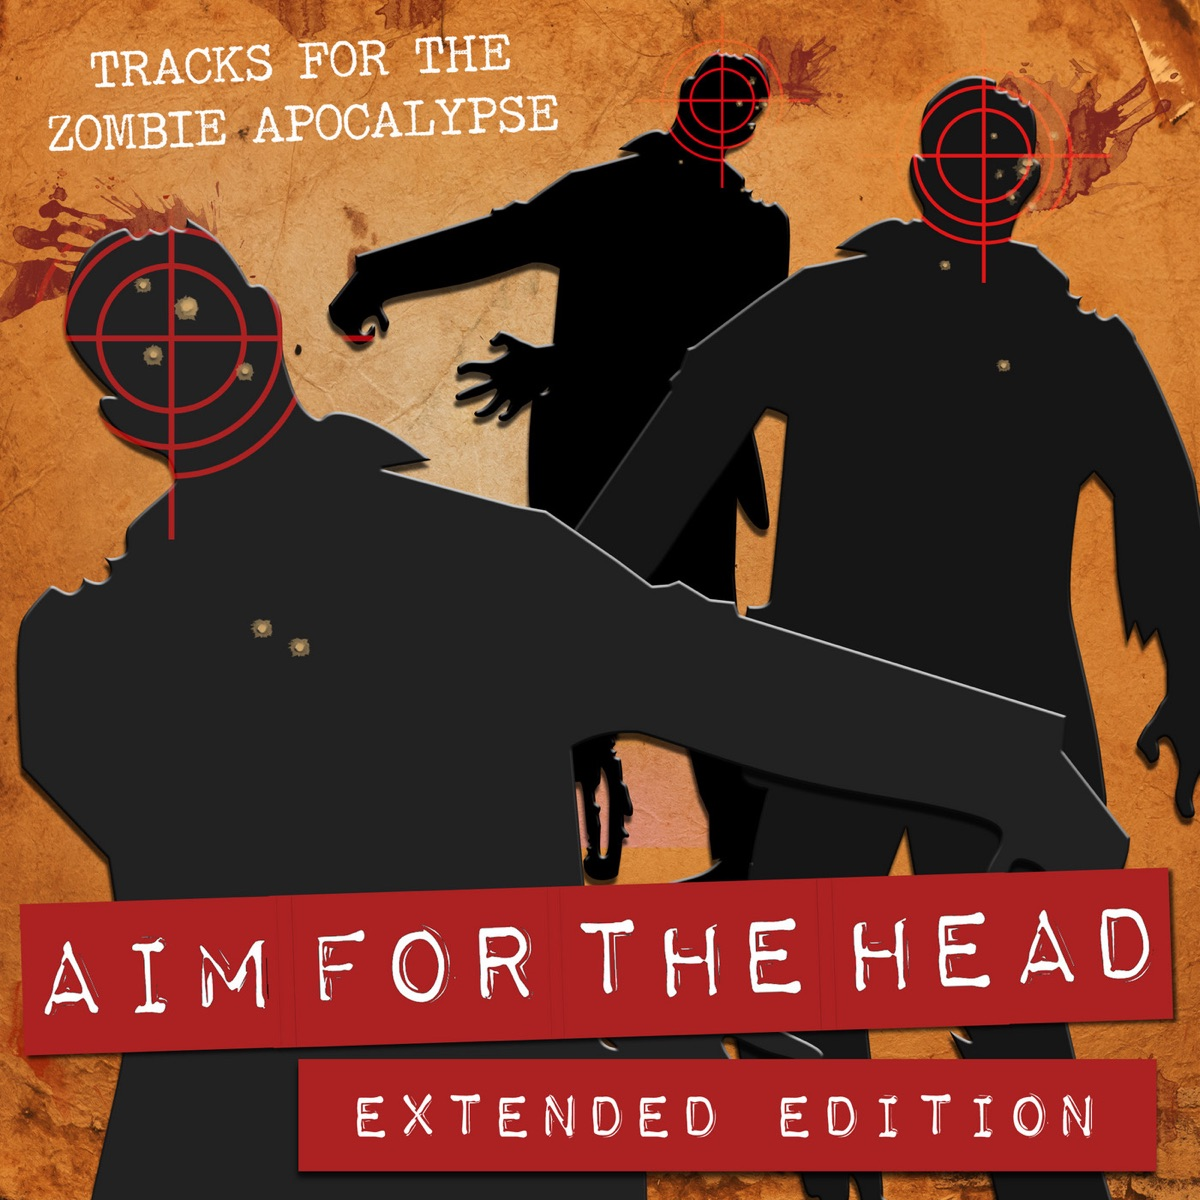 Aim for the Head Tracks for the Zombie Apocalypse Extended Edition Various Artists CD cover